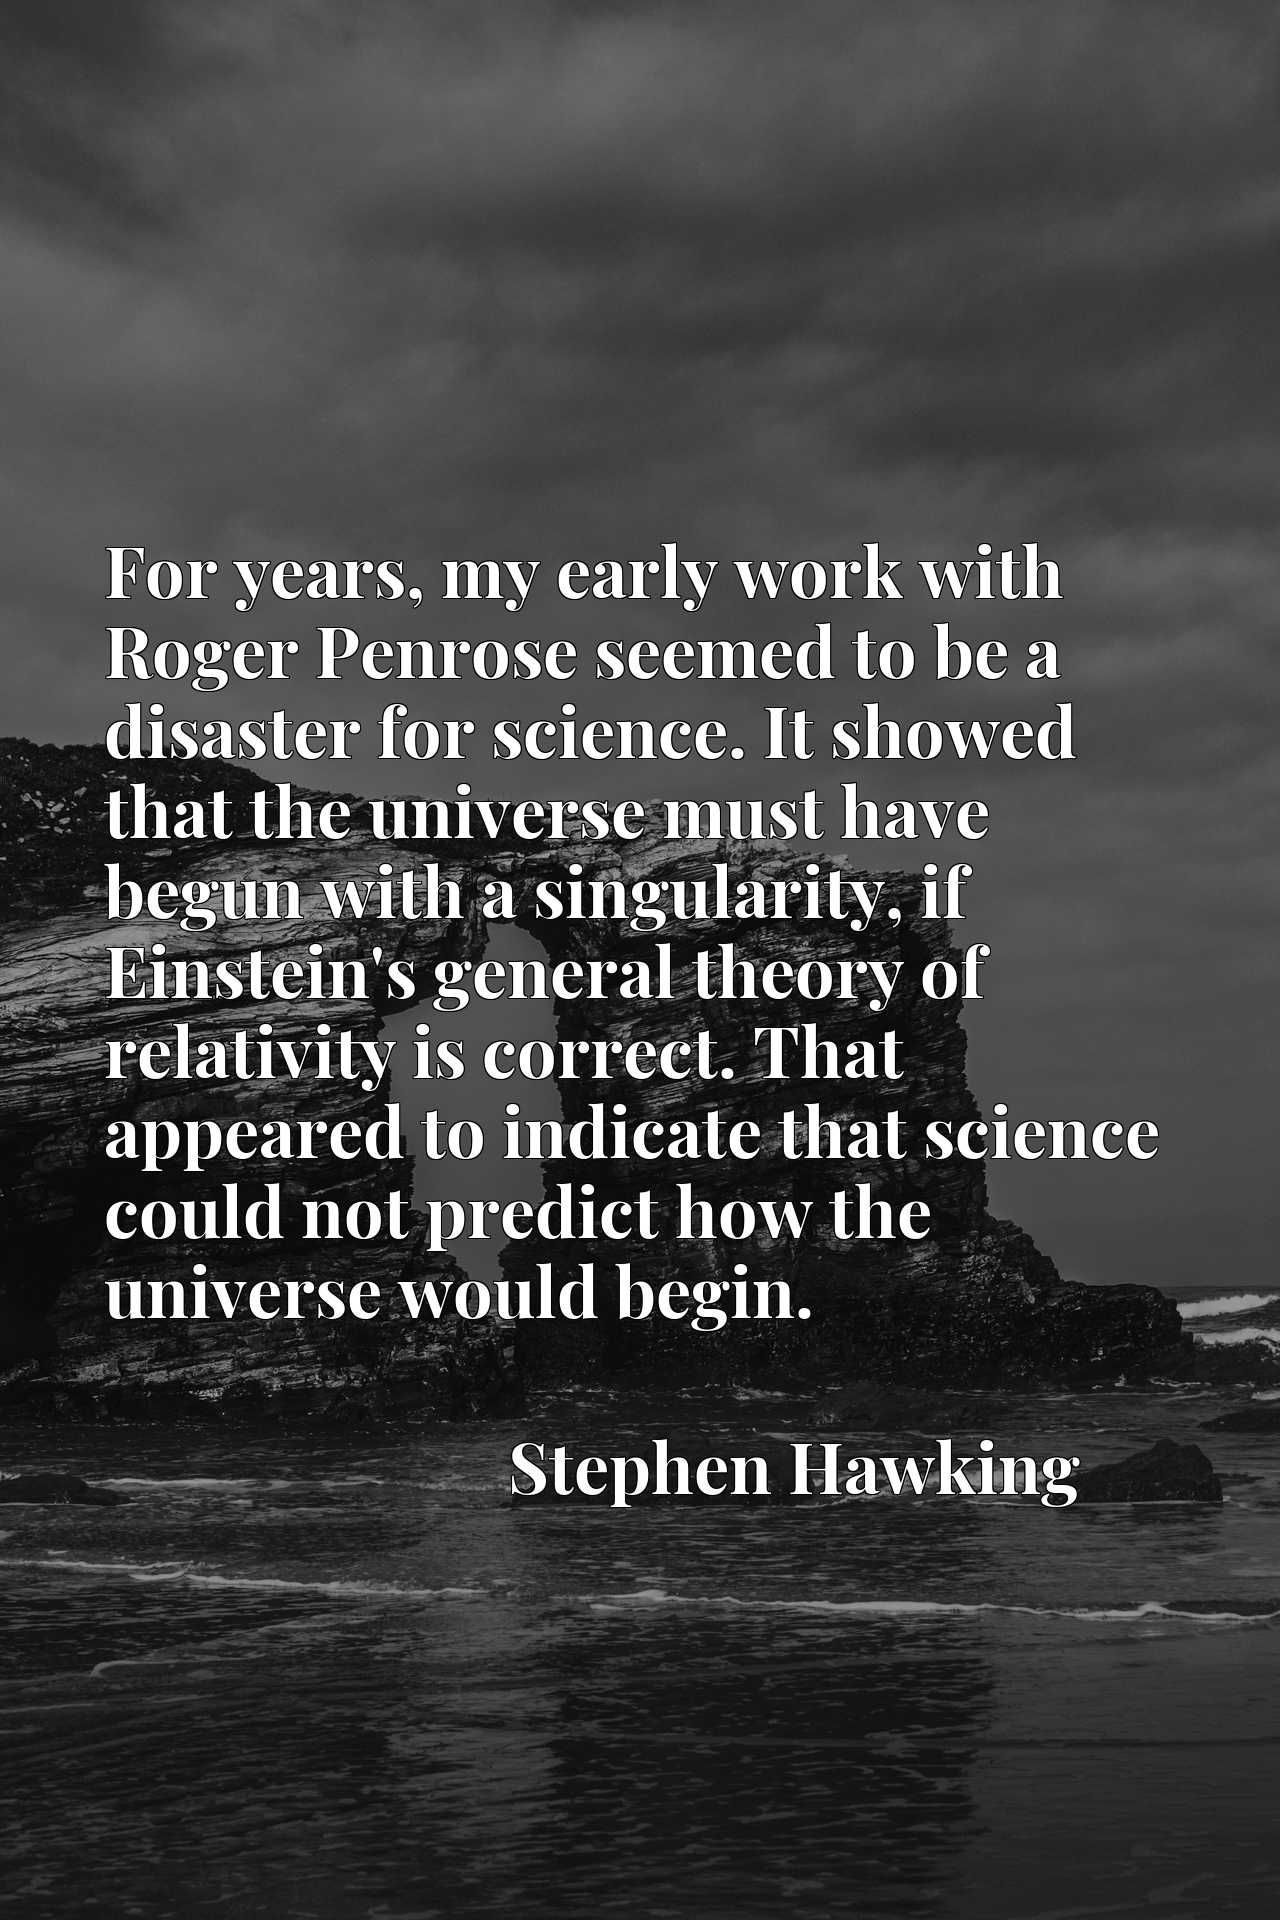 For years, my early work with Roger Penrose seemed to be a disaster for science. It showed that the universe must have begun with a singularity, if Einstein's general theory of relativity is correct. That appeared to indicate that science could not predict how the universe would begin.